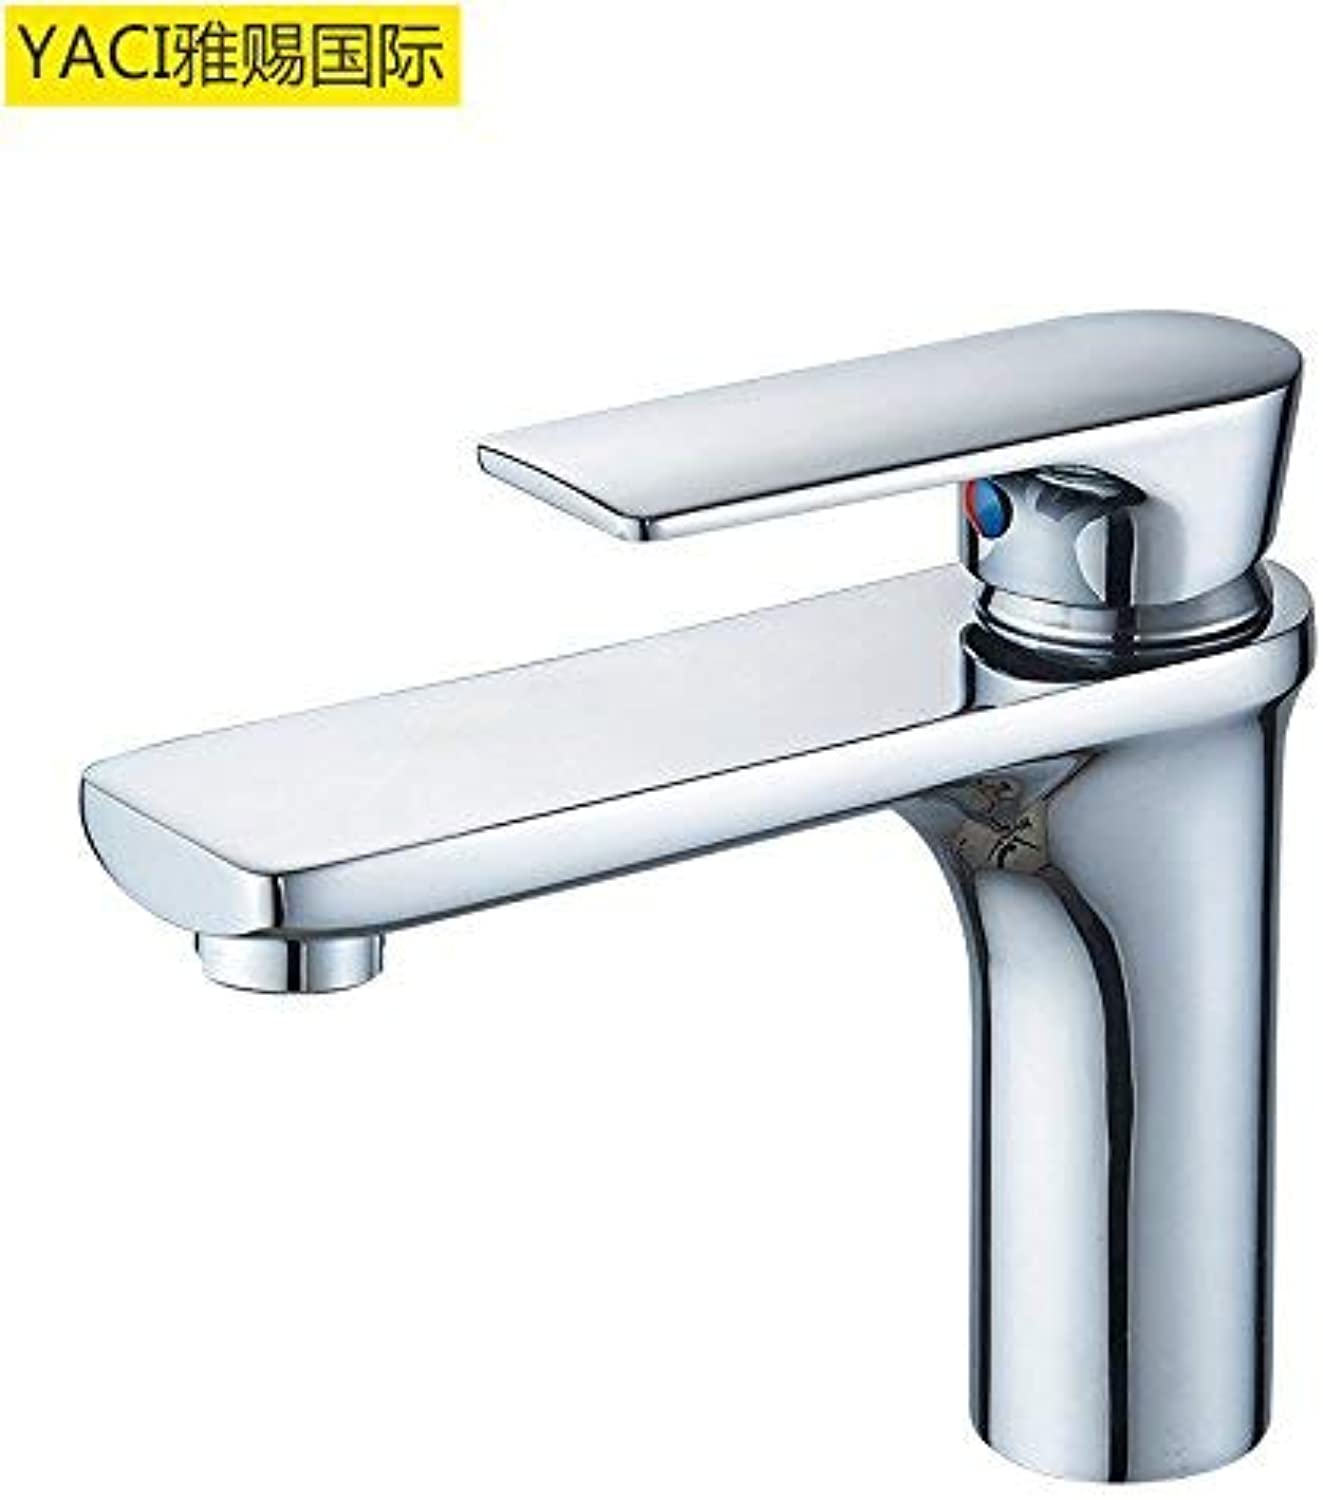 Modern copper faucet copper high faucet hot and cold water basin faucet 06 (color   Mp9005)